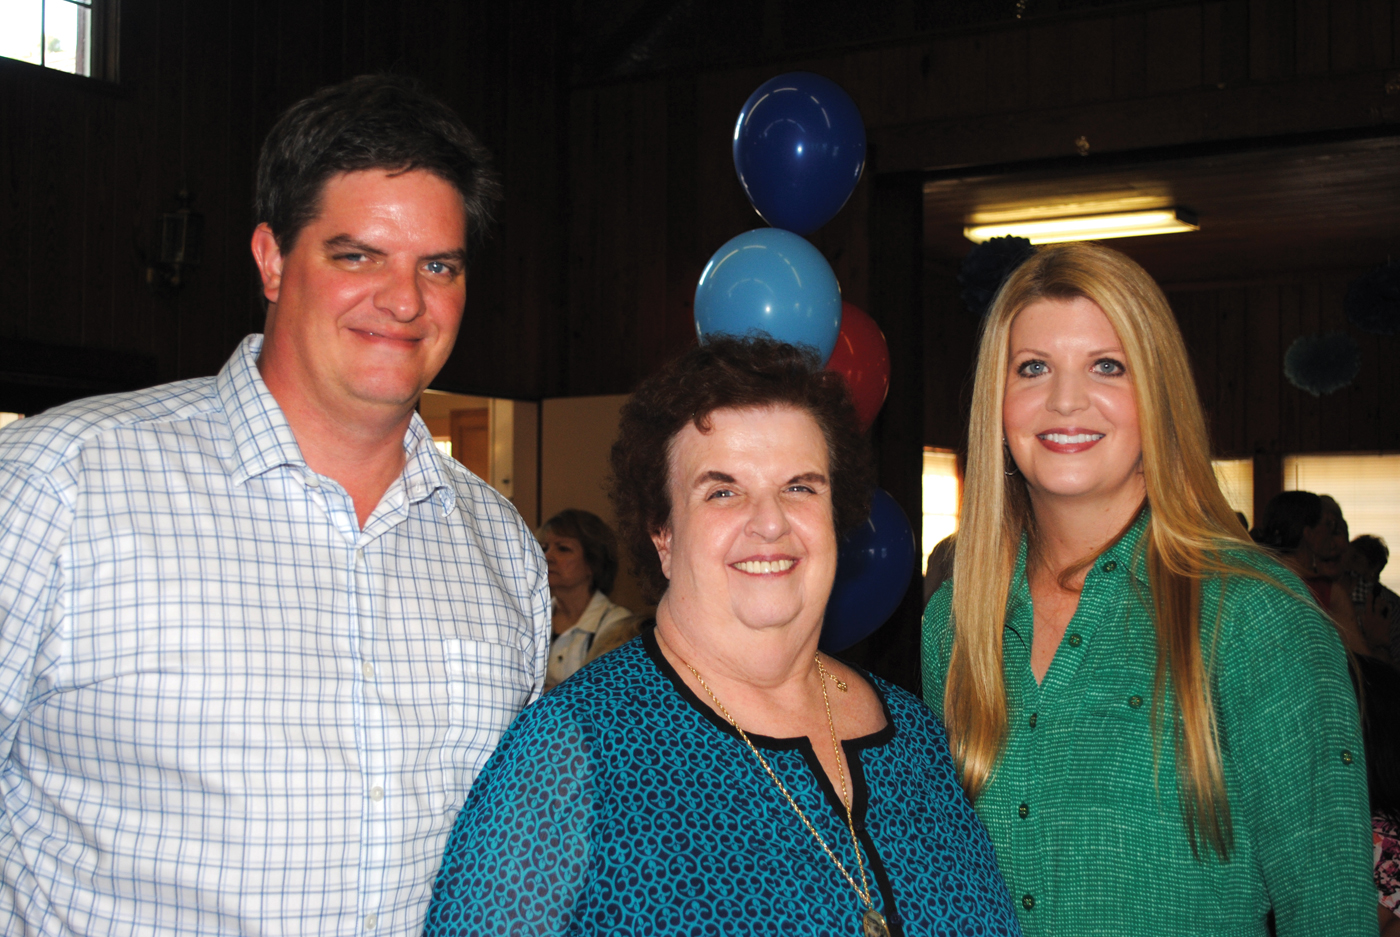 Spn Eric and daughter Ingrid join their mother, Seabrook City Secretary Michele Glaser, at her retirement party in the Seabrook Community House.